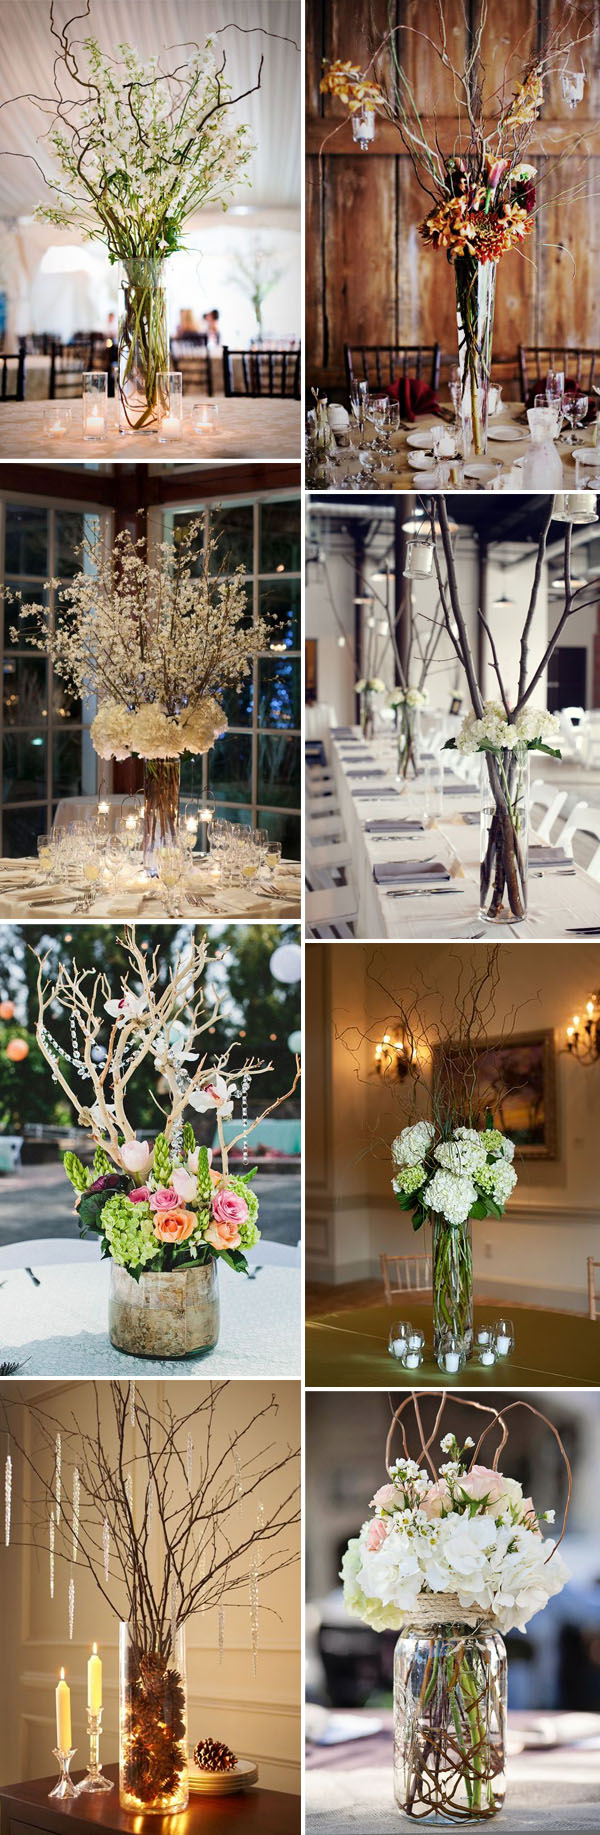 28 creative budget friendly diy wedding decoration ideas easy diy branchtwig and floral vase wedding centerpieces ideas junglespirit Image collections